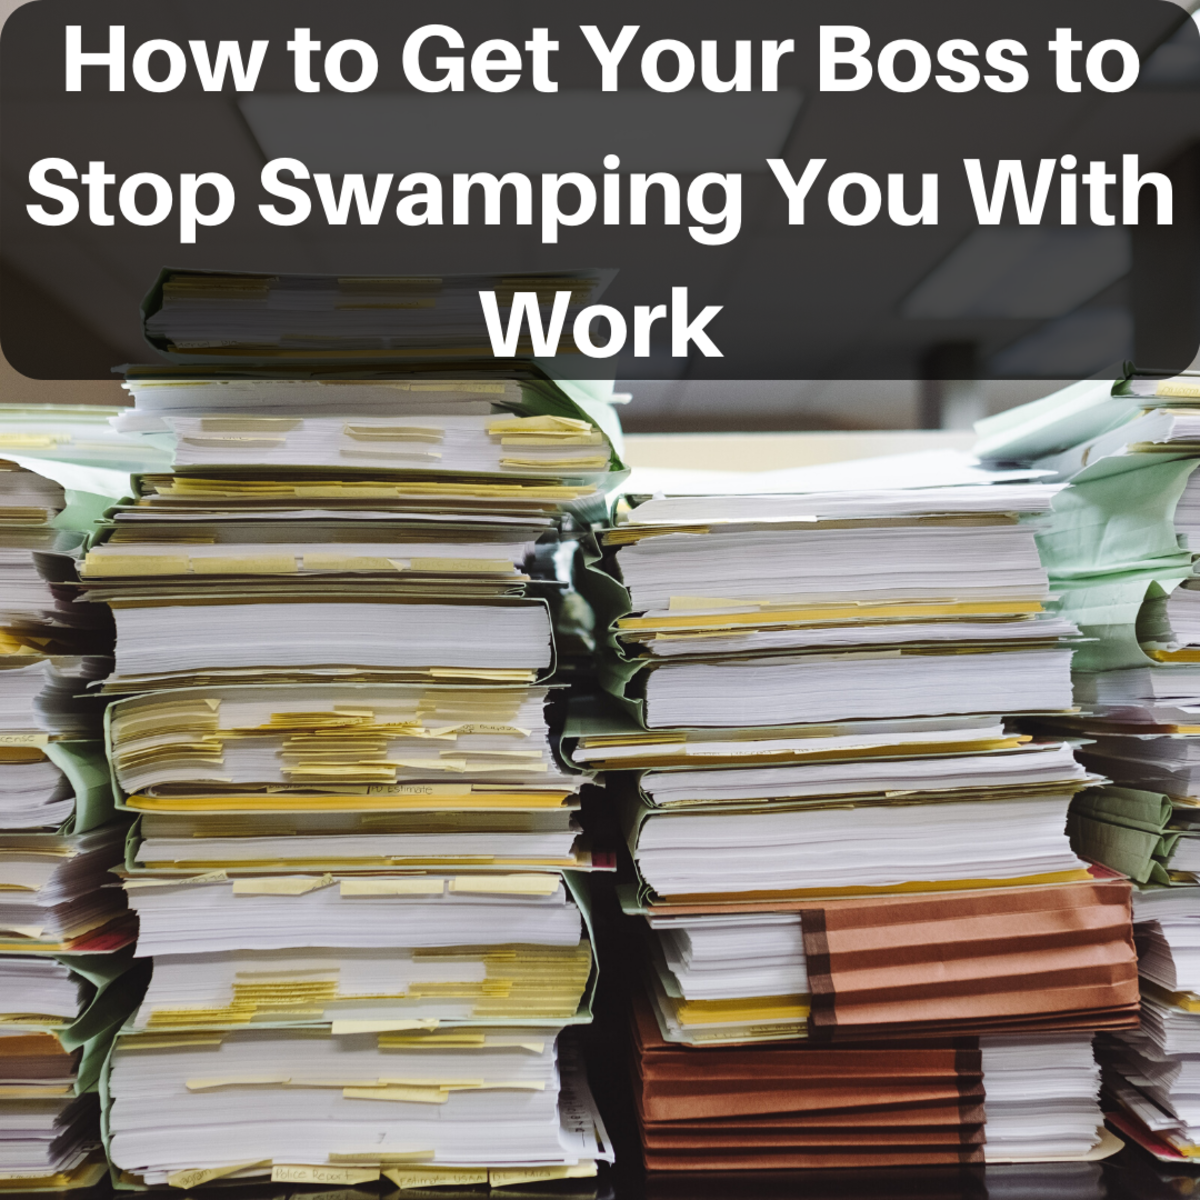 How to Tell Your Boss to Quit Swamping You With Too Much Work